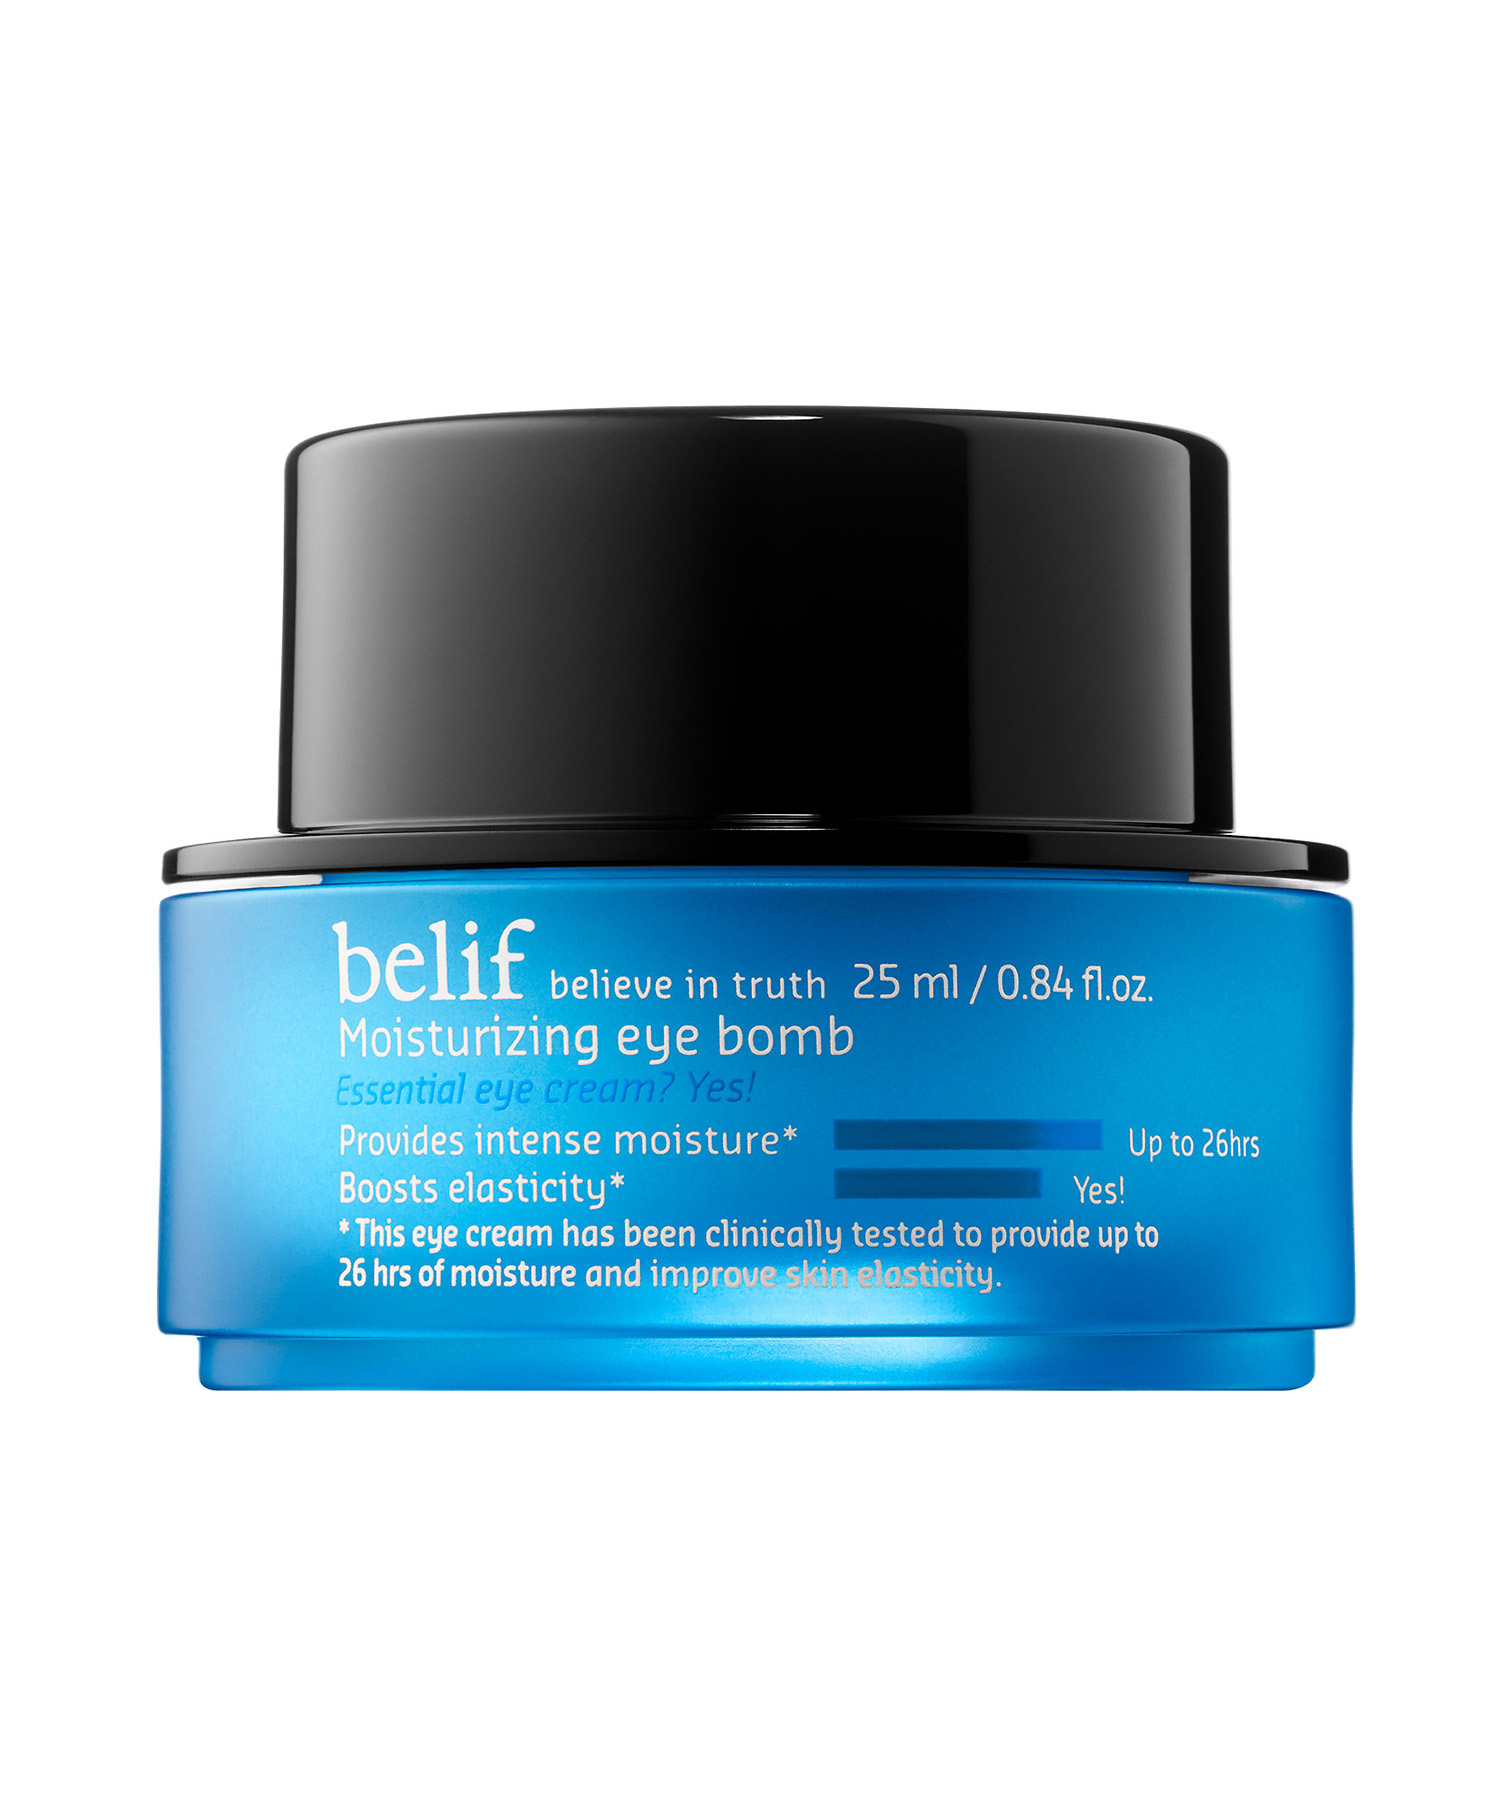 Belif Moisturizing Eye Bomb ( The 5 Best Selling Products from Sephora This Year)